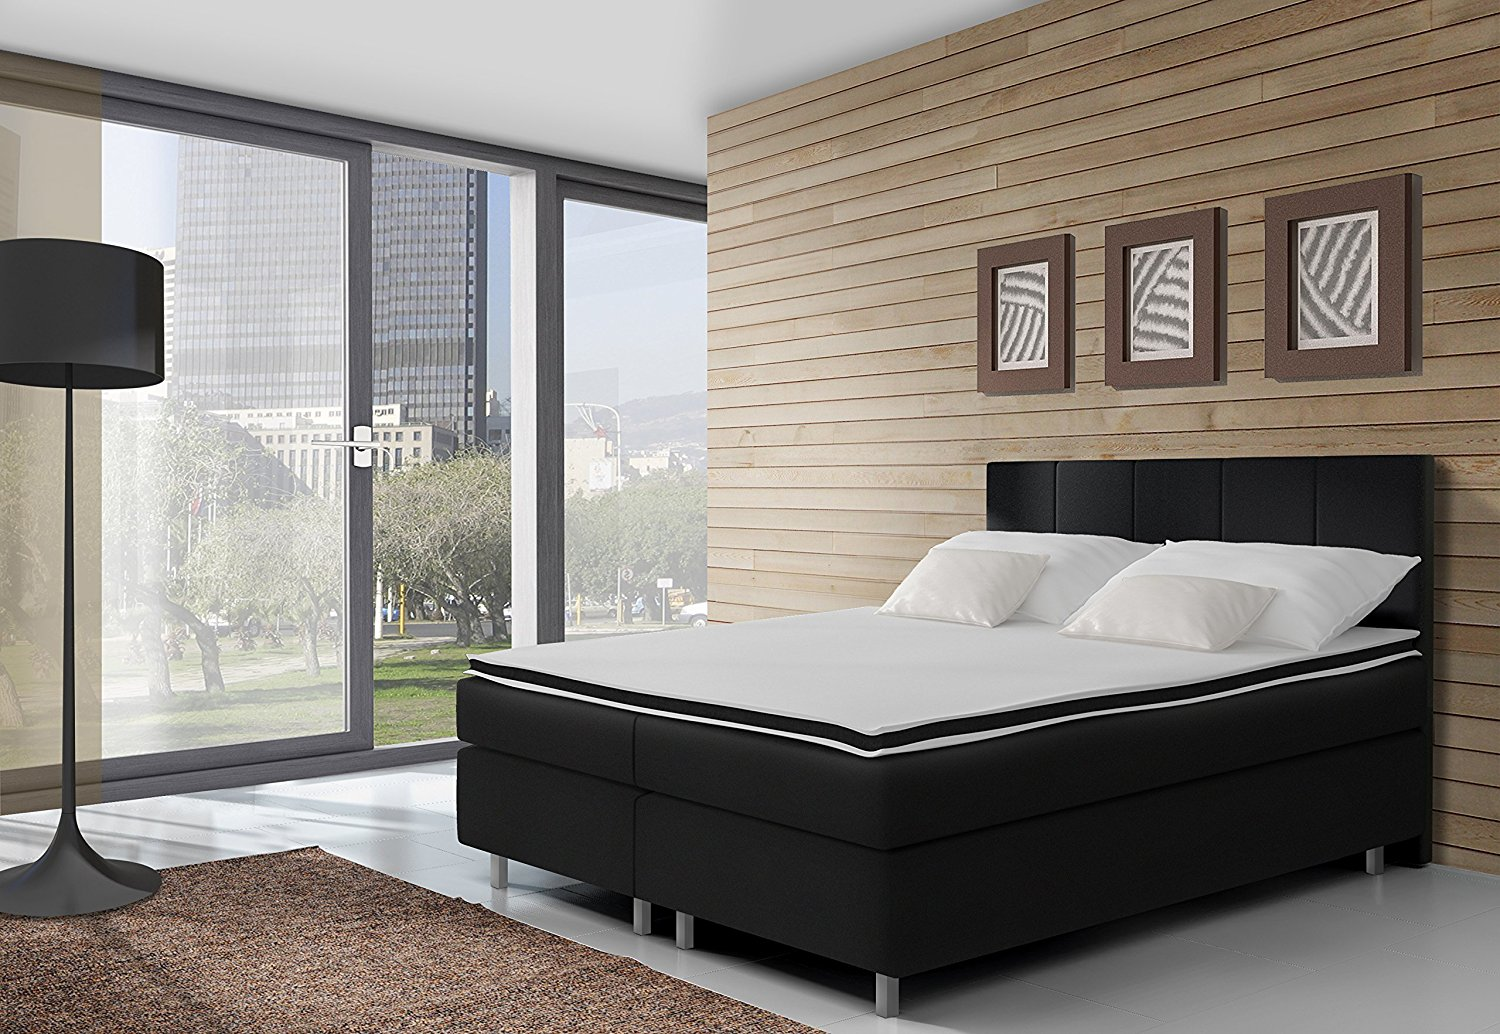 boxspringbett testsieger stiftung warentest stiftung warentest boxspringbett boxspringbett. Black Bedroom Furniture Sets. Home Design Ideas